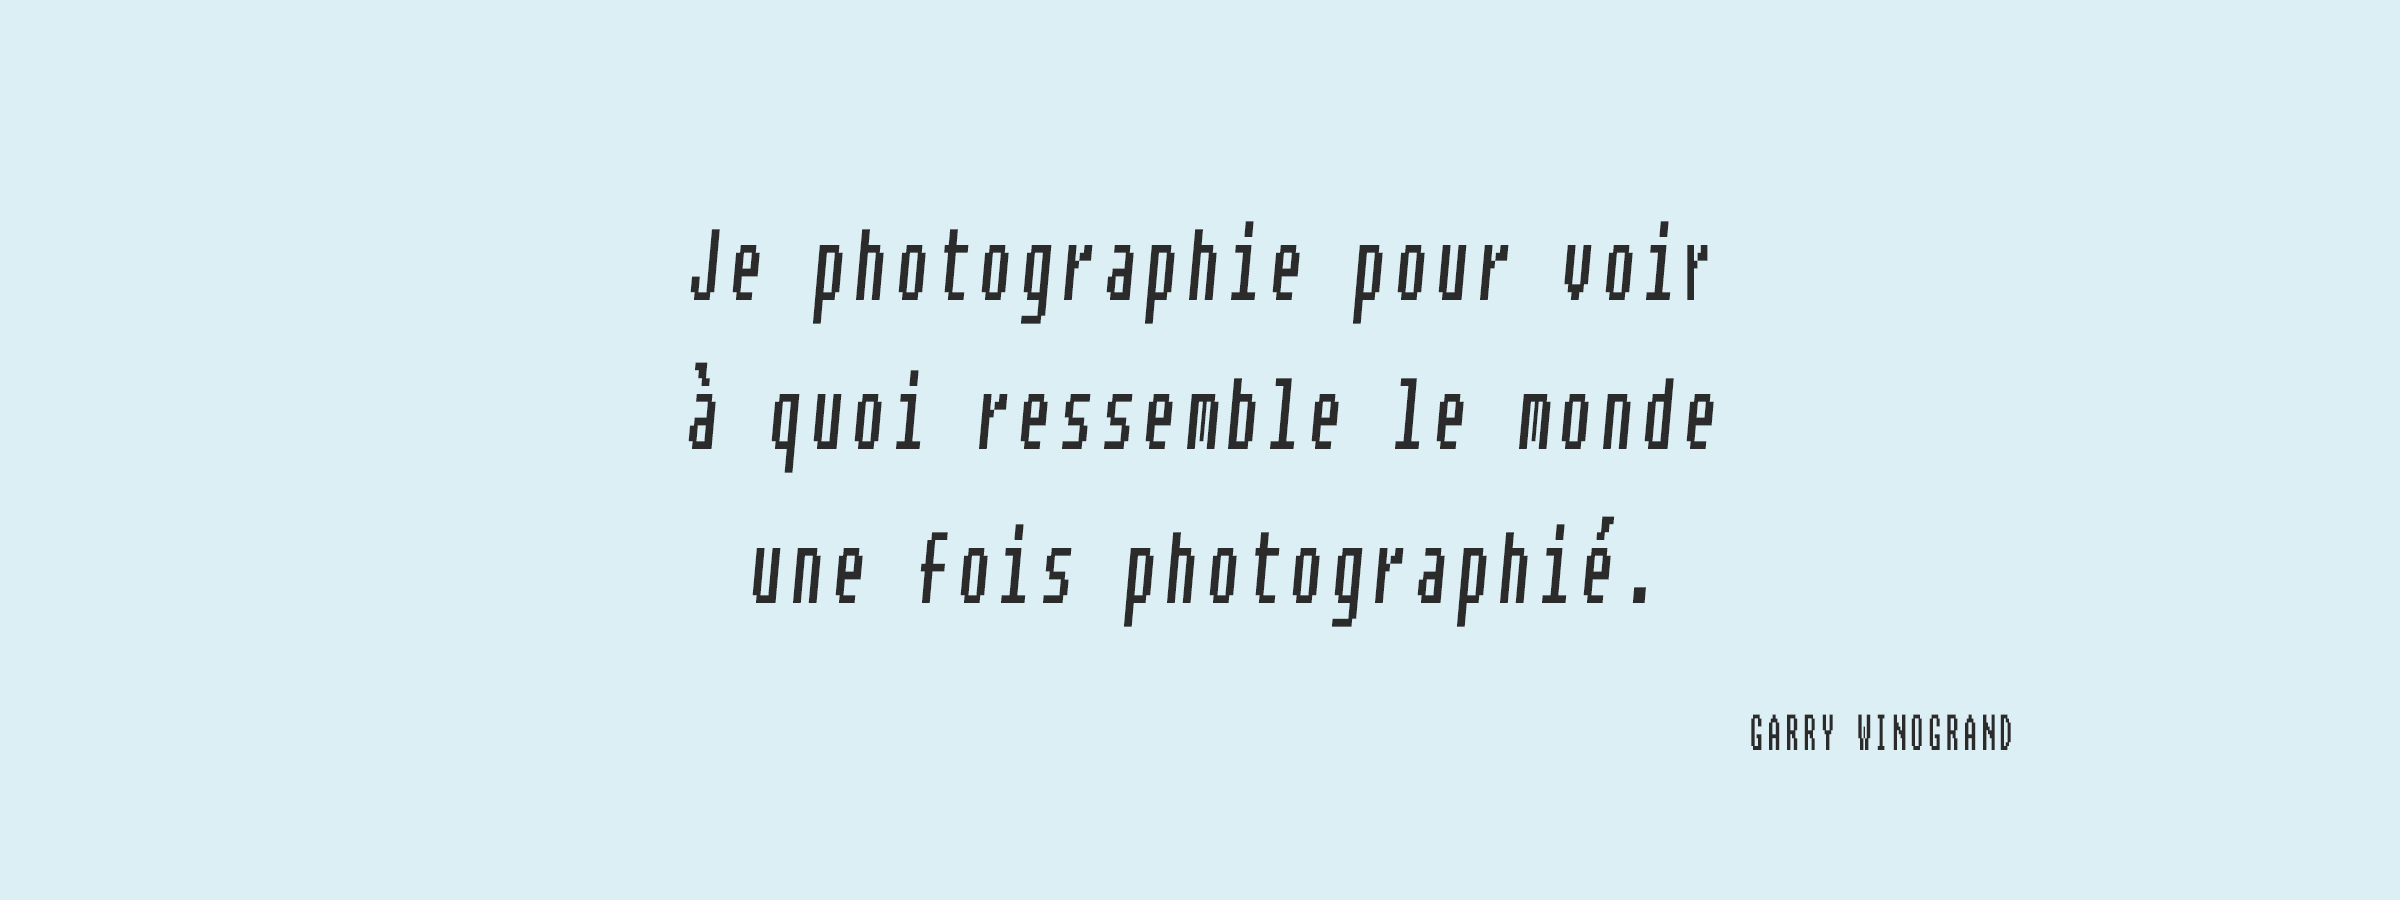 Citation-Winogrand